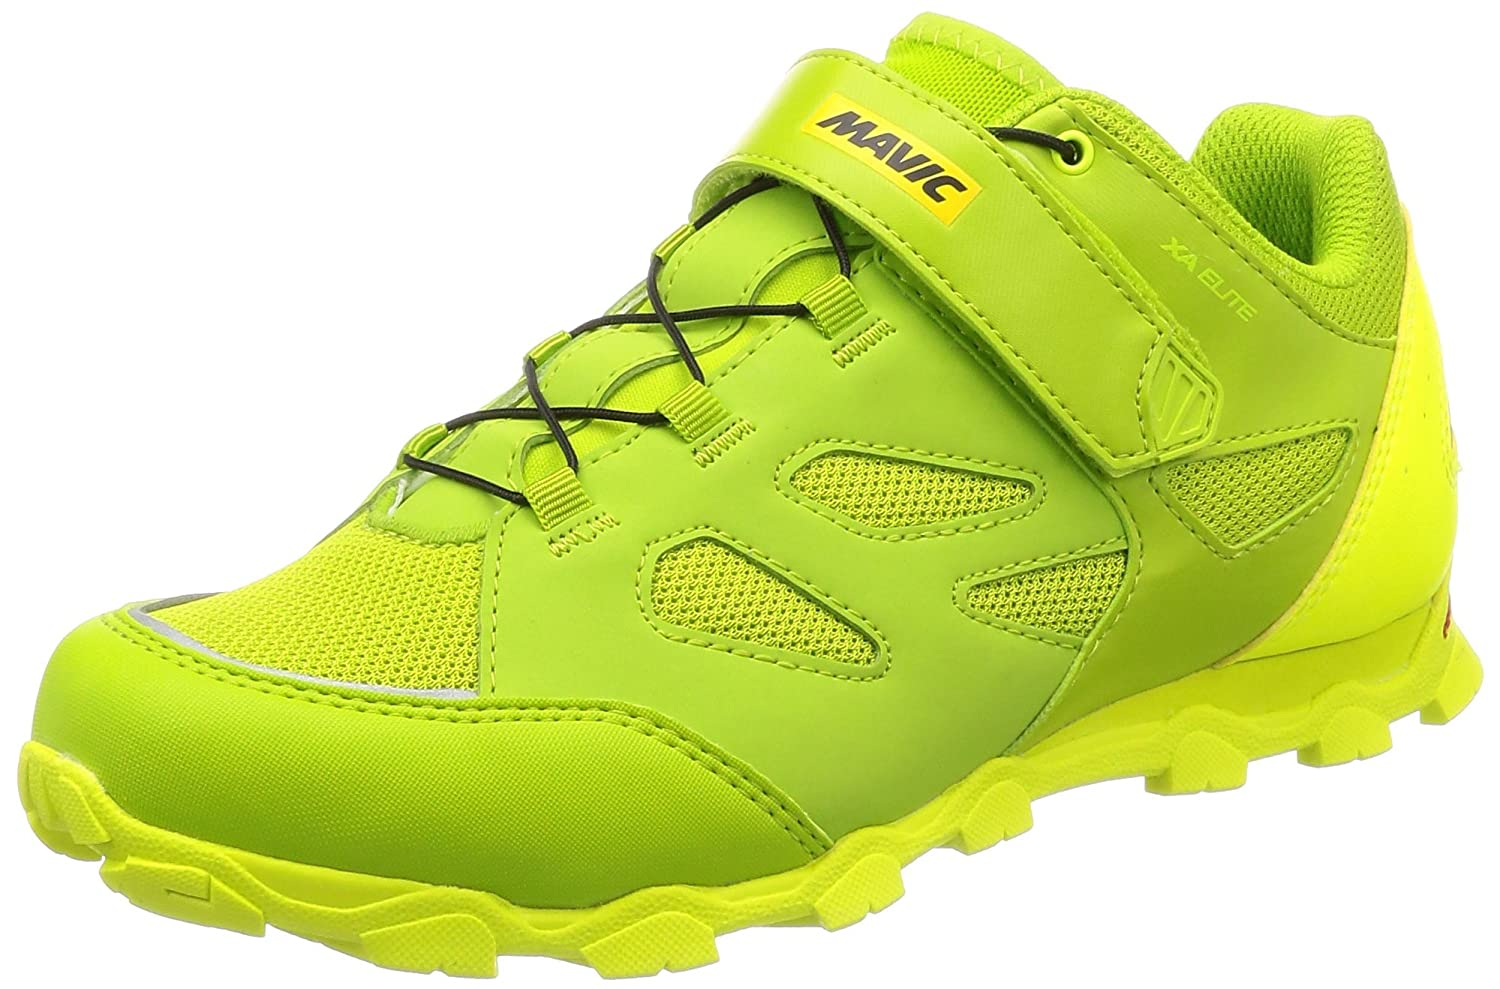 Mavic XA Elite Cycling Shoes - Men's B078S58181 12.5|Green/Yellow/Black